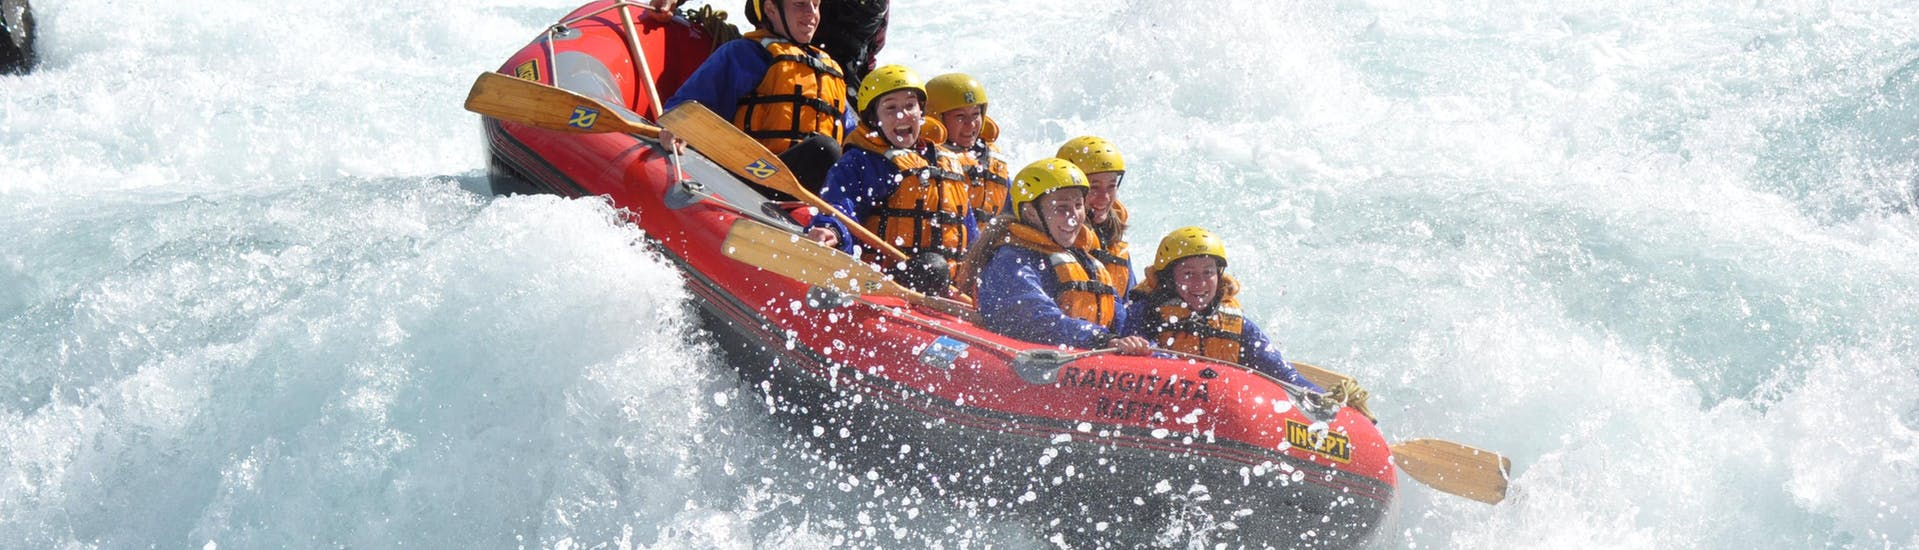 The participants of Rangitata Gorge Rafting with Christchurch transfer organized by Rangitata Rafts are facing a thunderous grade 5 rapid on the river.